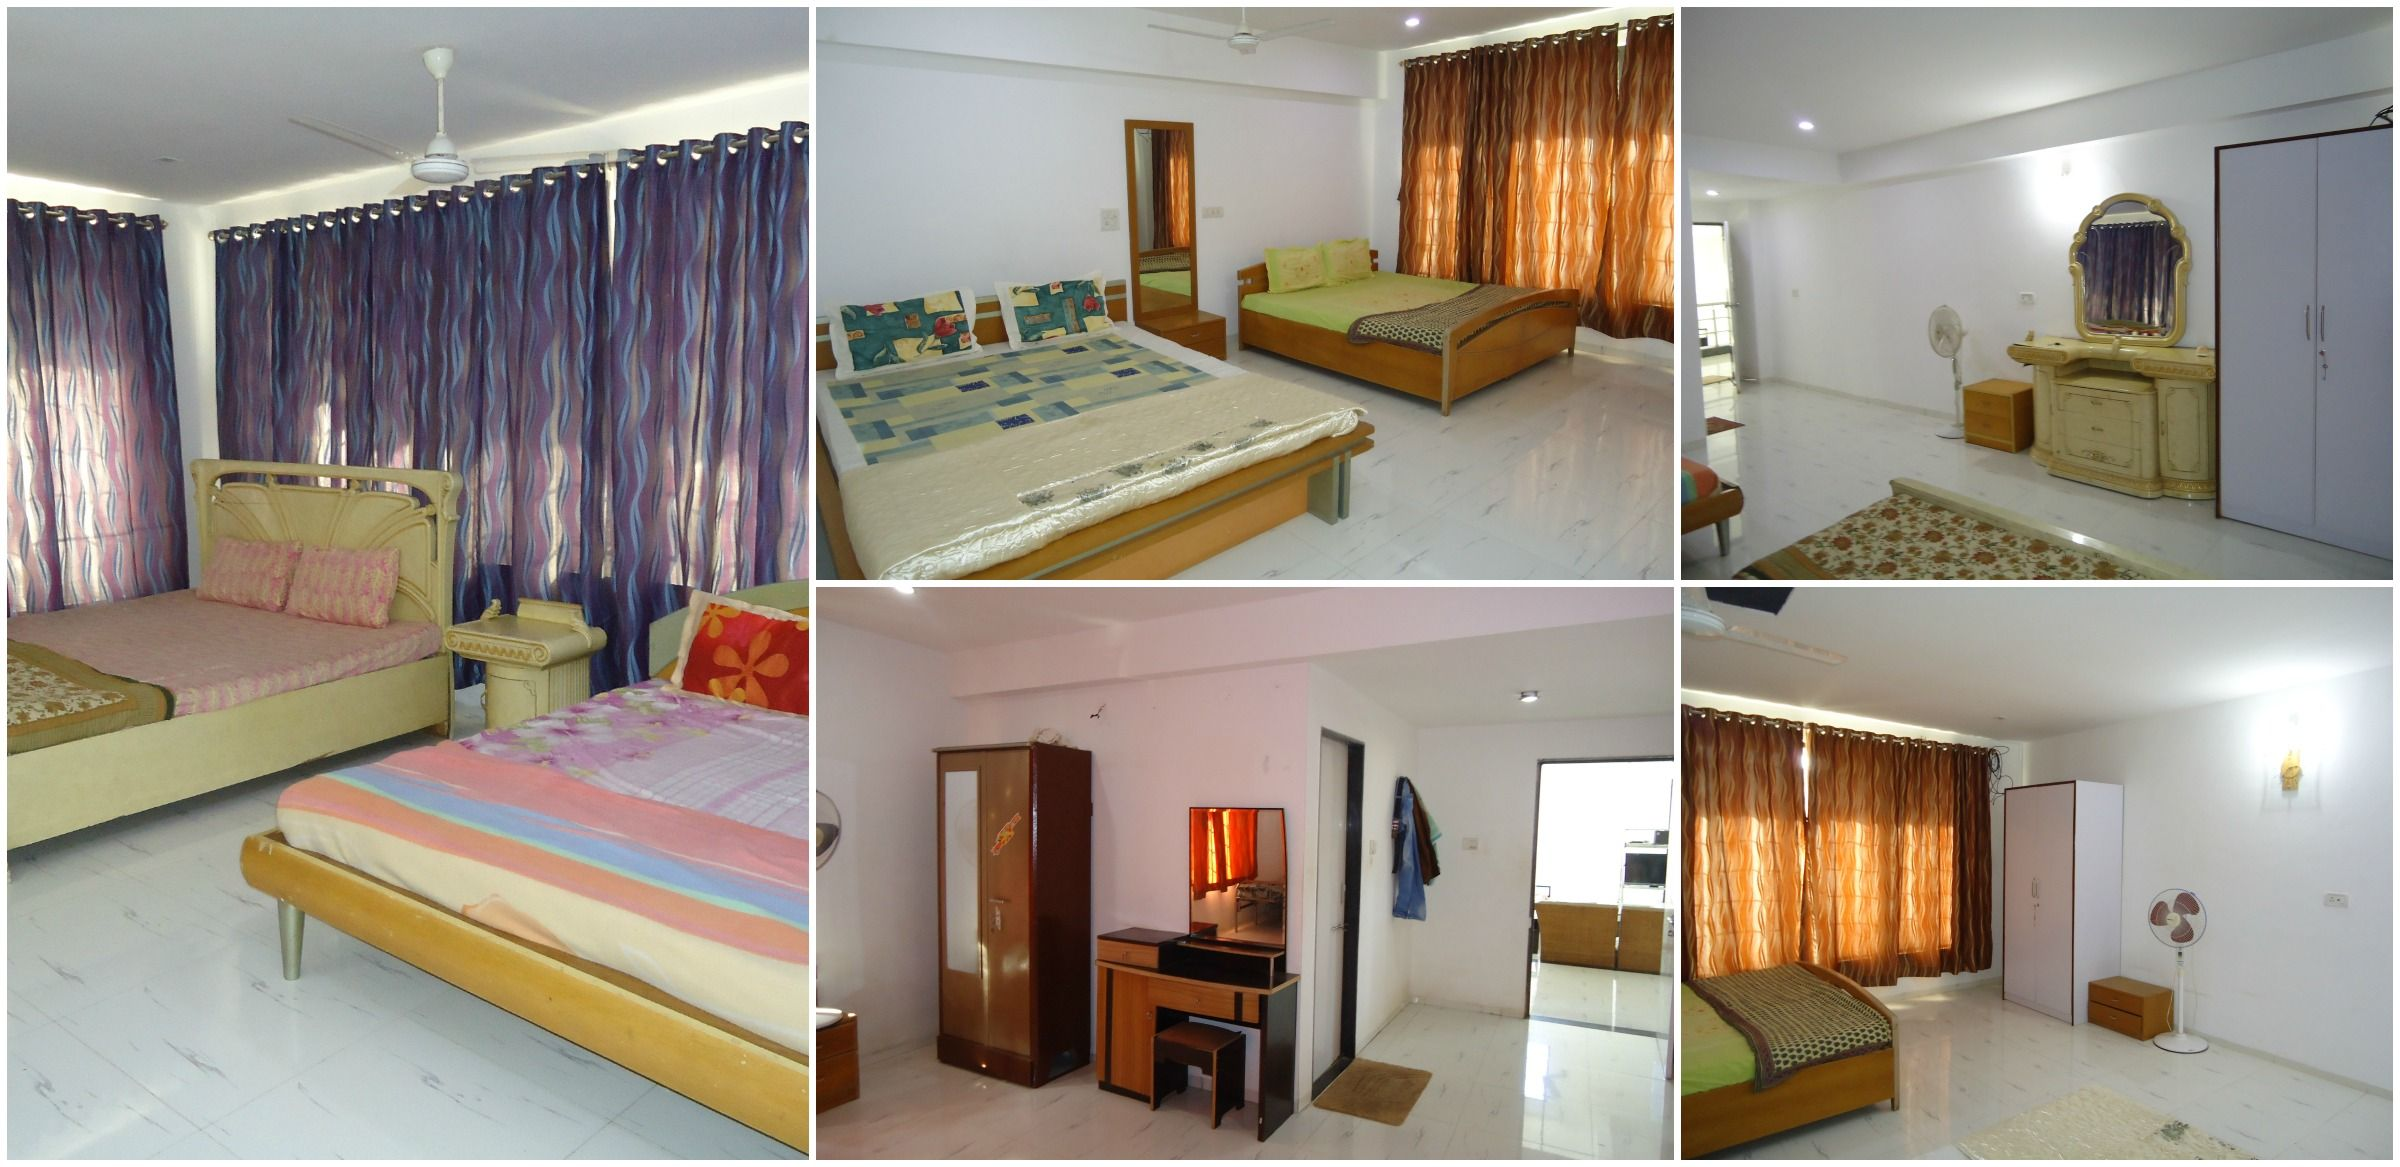 All the comforts you need at Karjatvilla farmhouse in